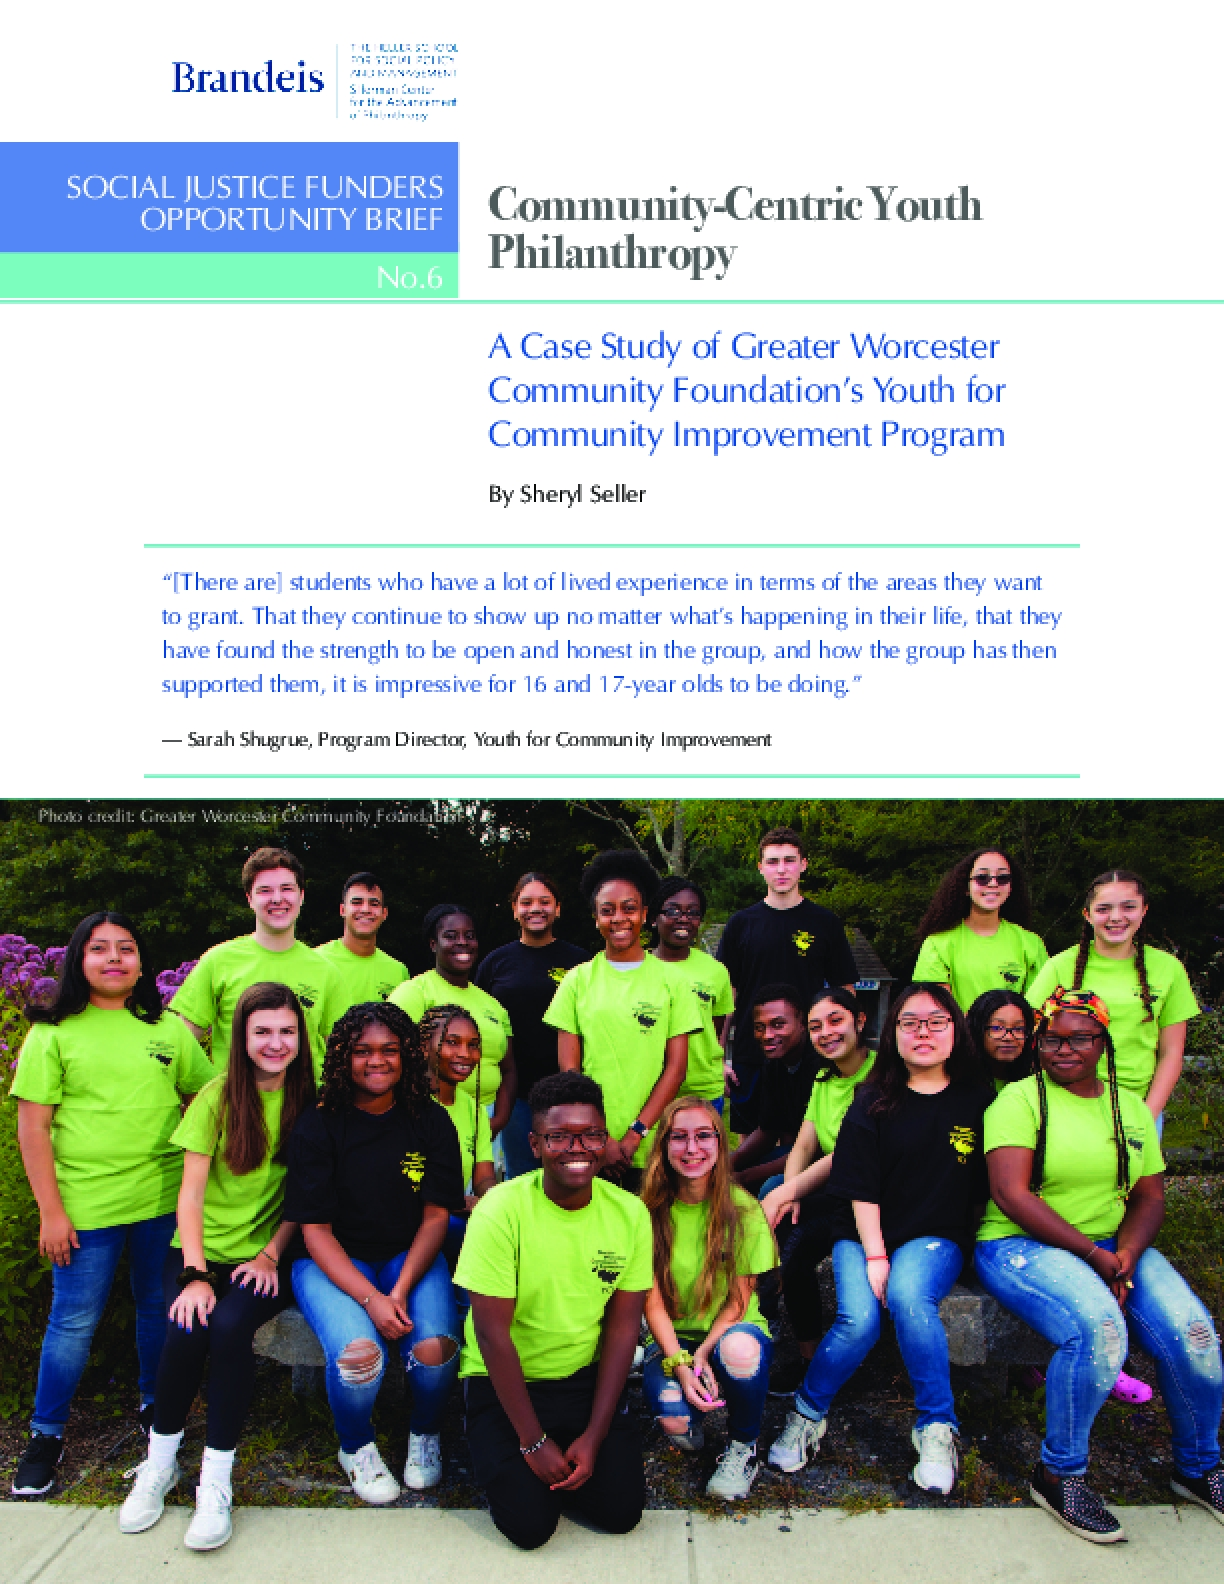 Community-Centric Youth Philanthropy: A Case Study of Greater Worcester Community Foundation's Youth for Community Improvement Program